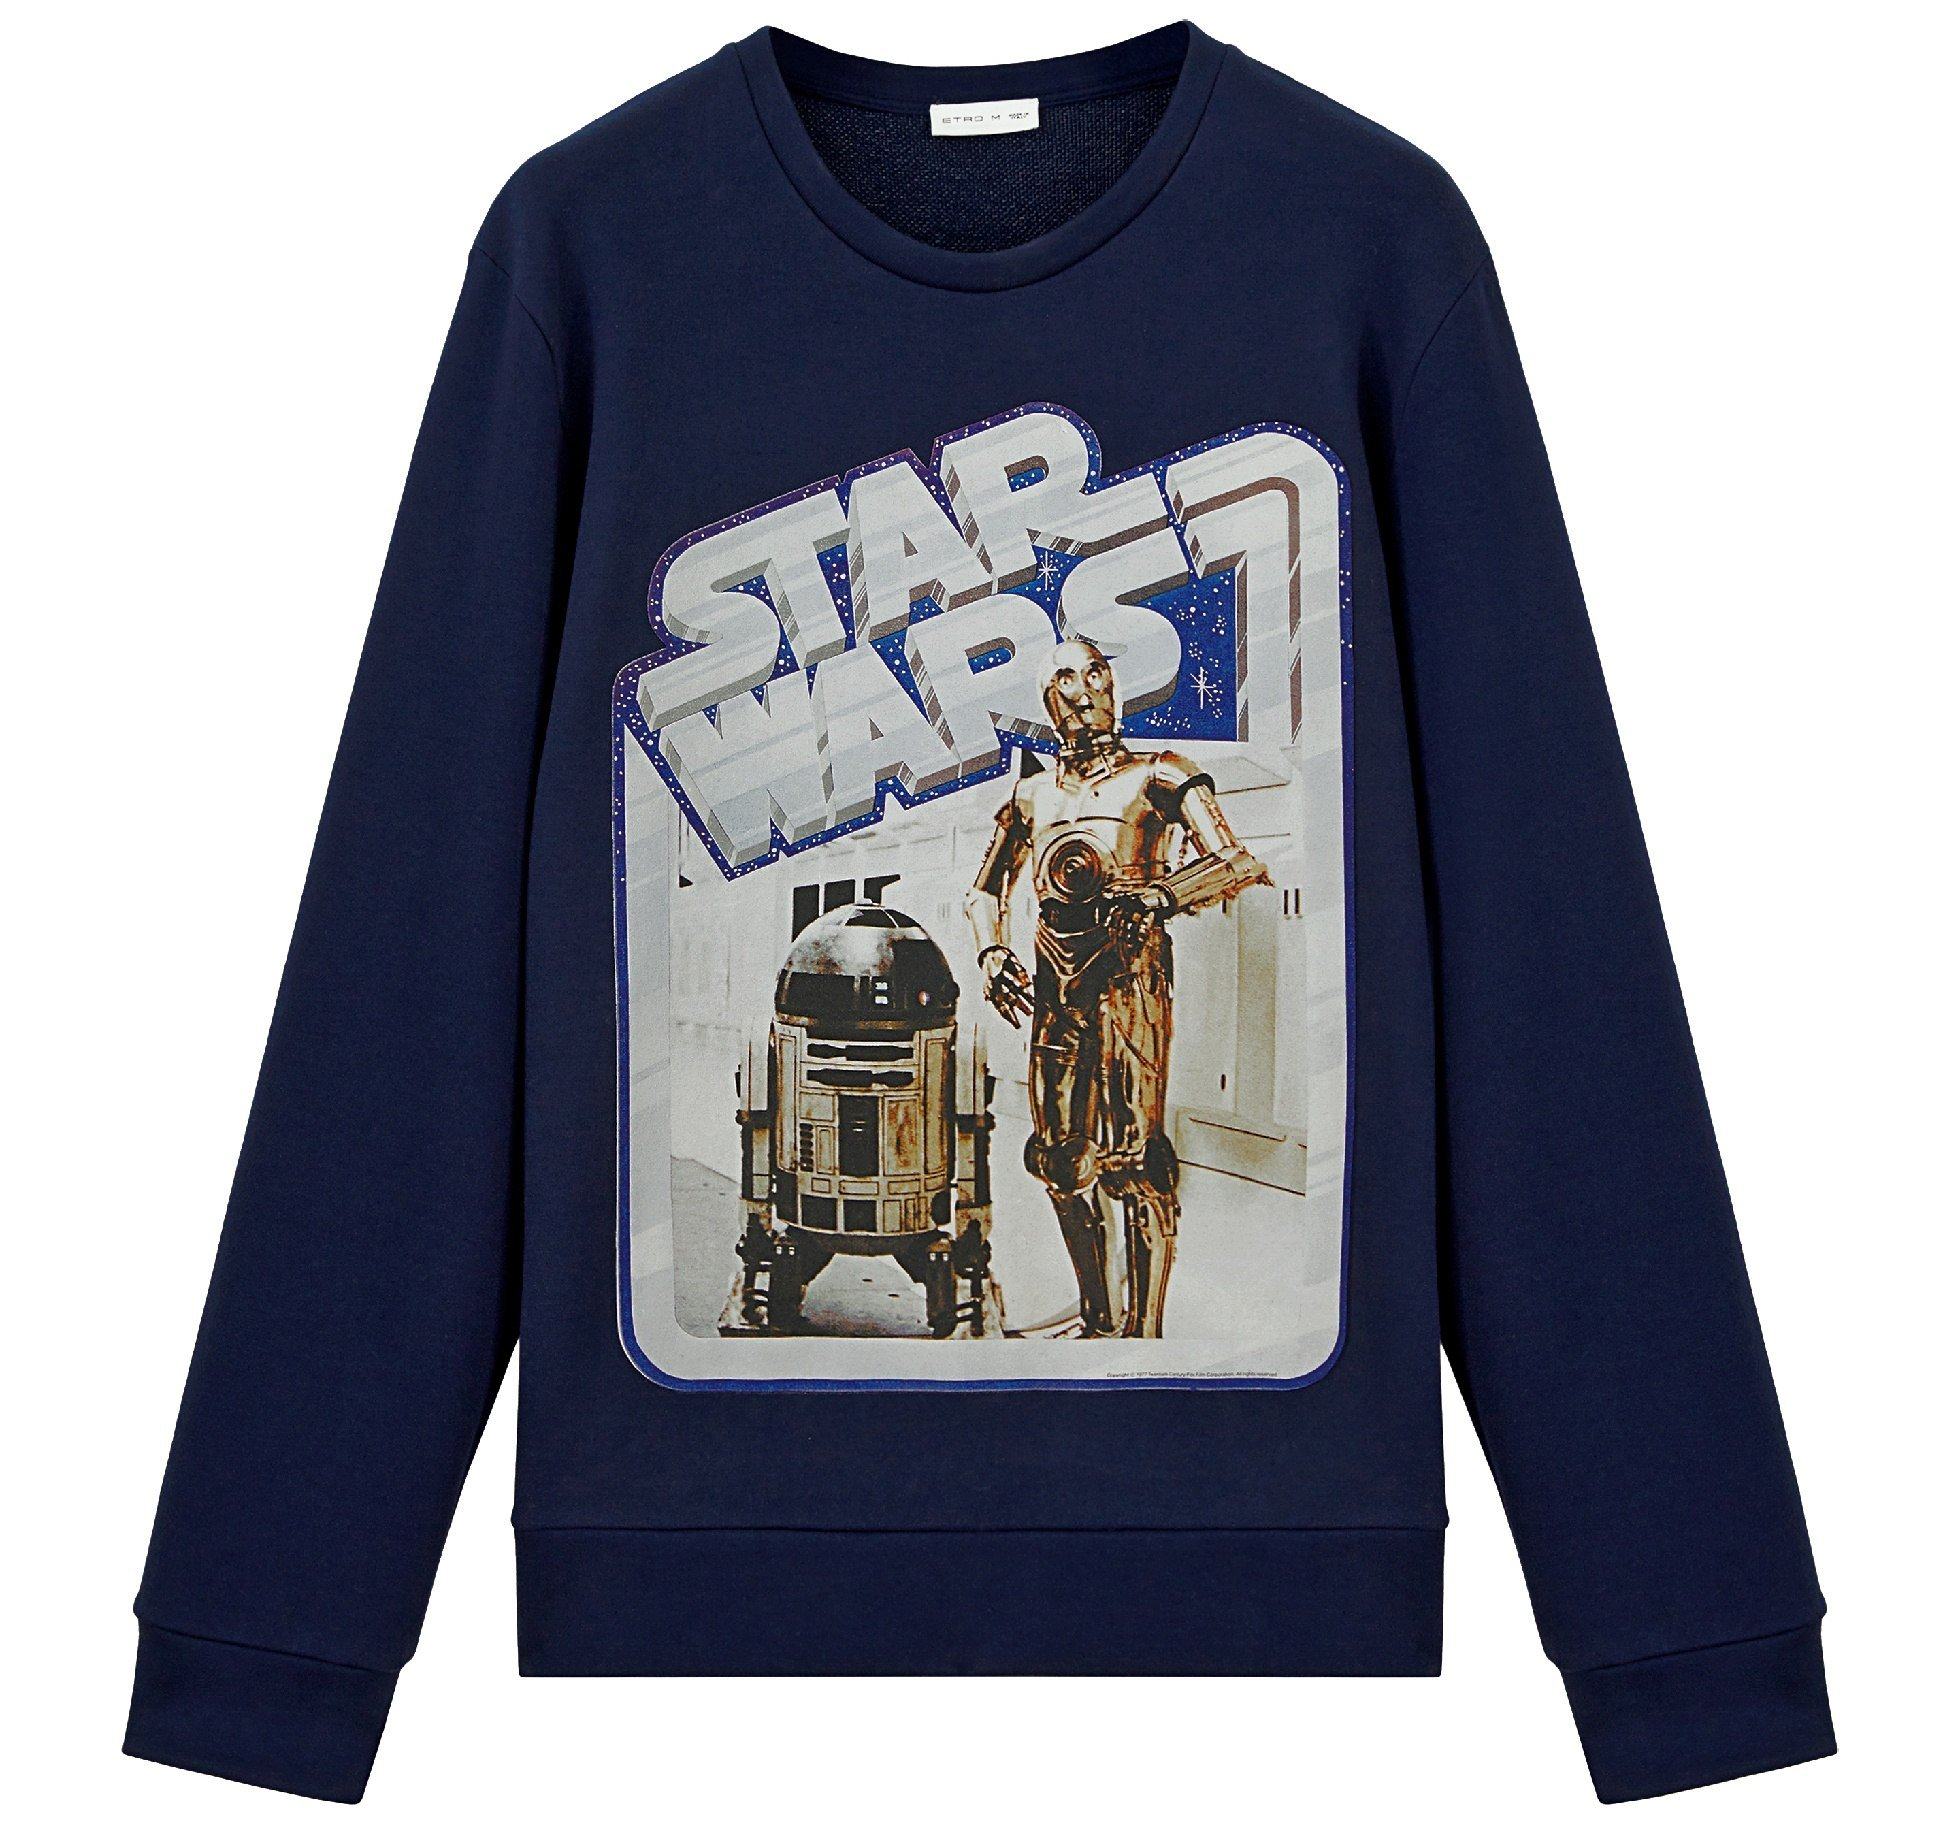 ETRO X STAR WARS black sweater featuring droids R2D2 and C3PO